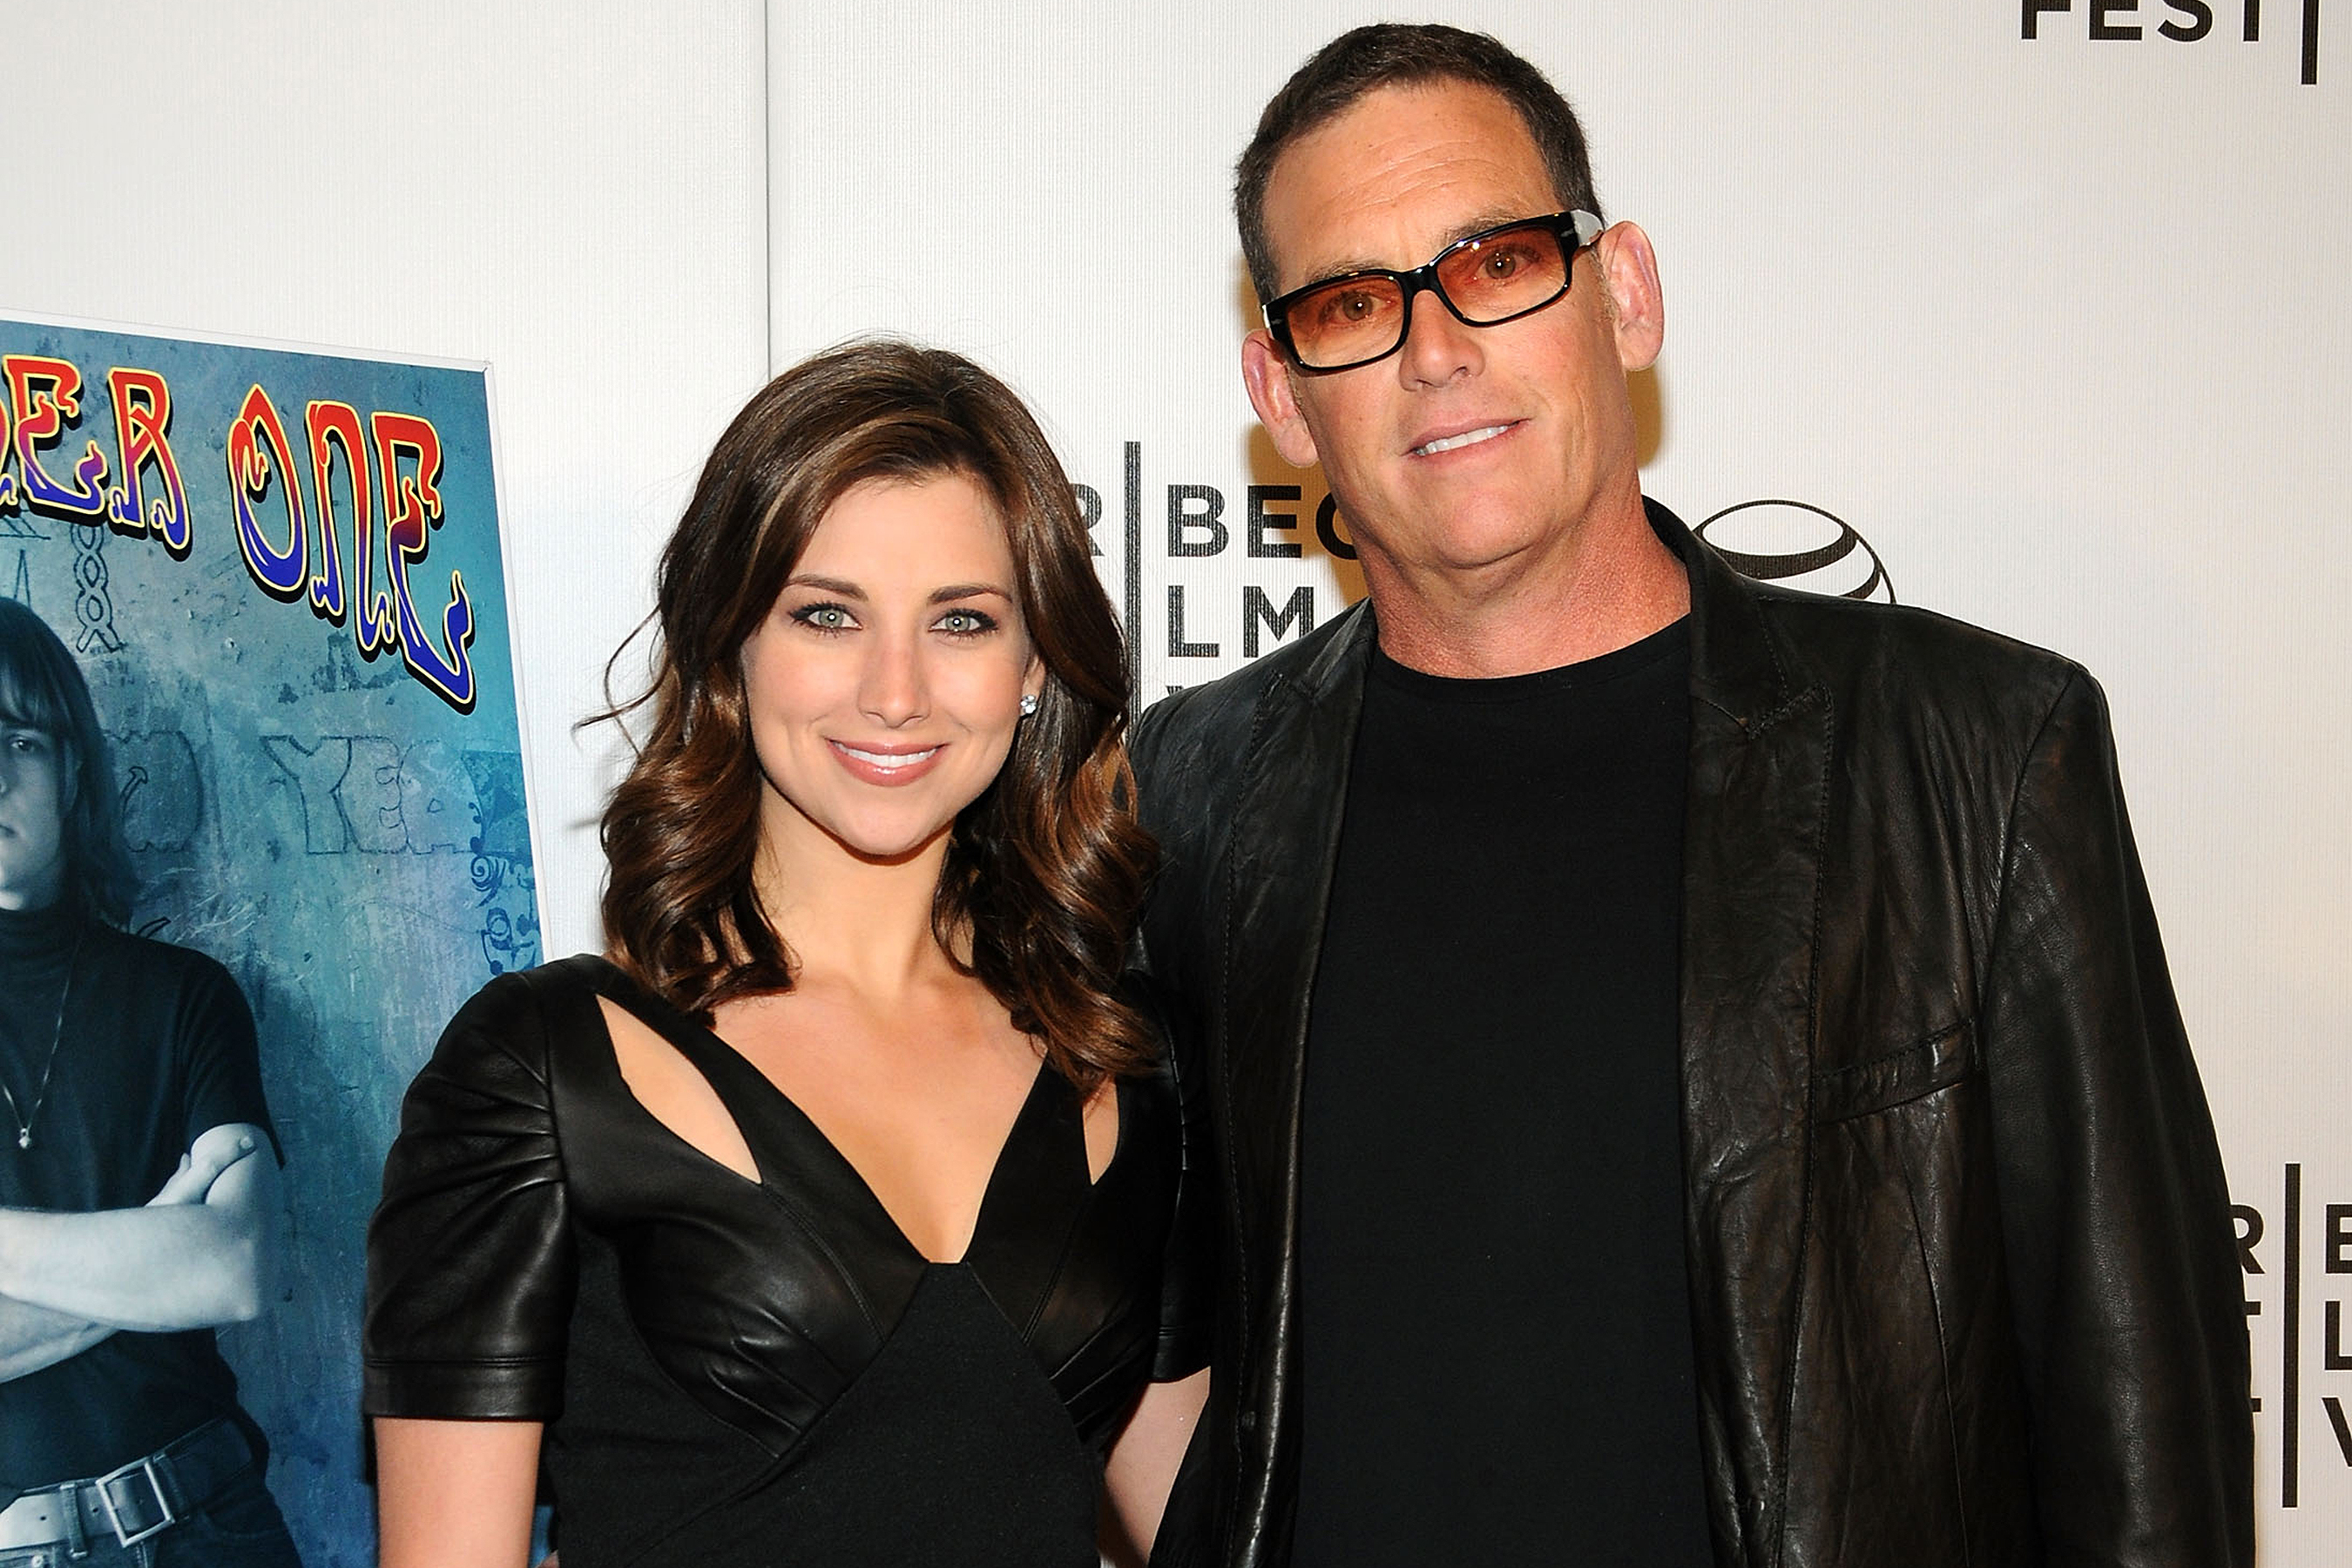 Bachelor creator Mike Fleiss' pregnant wife says he attacked her, 'demanded' she get abortion